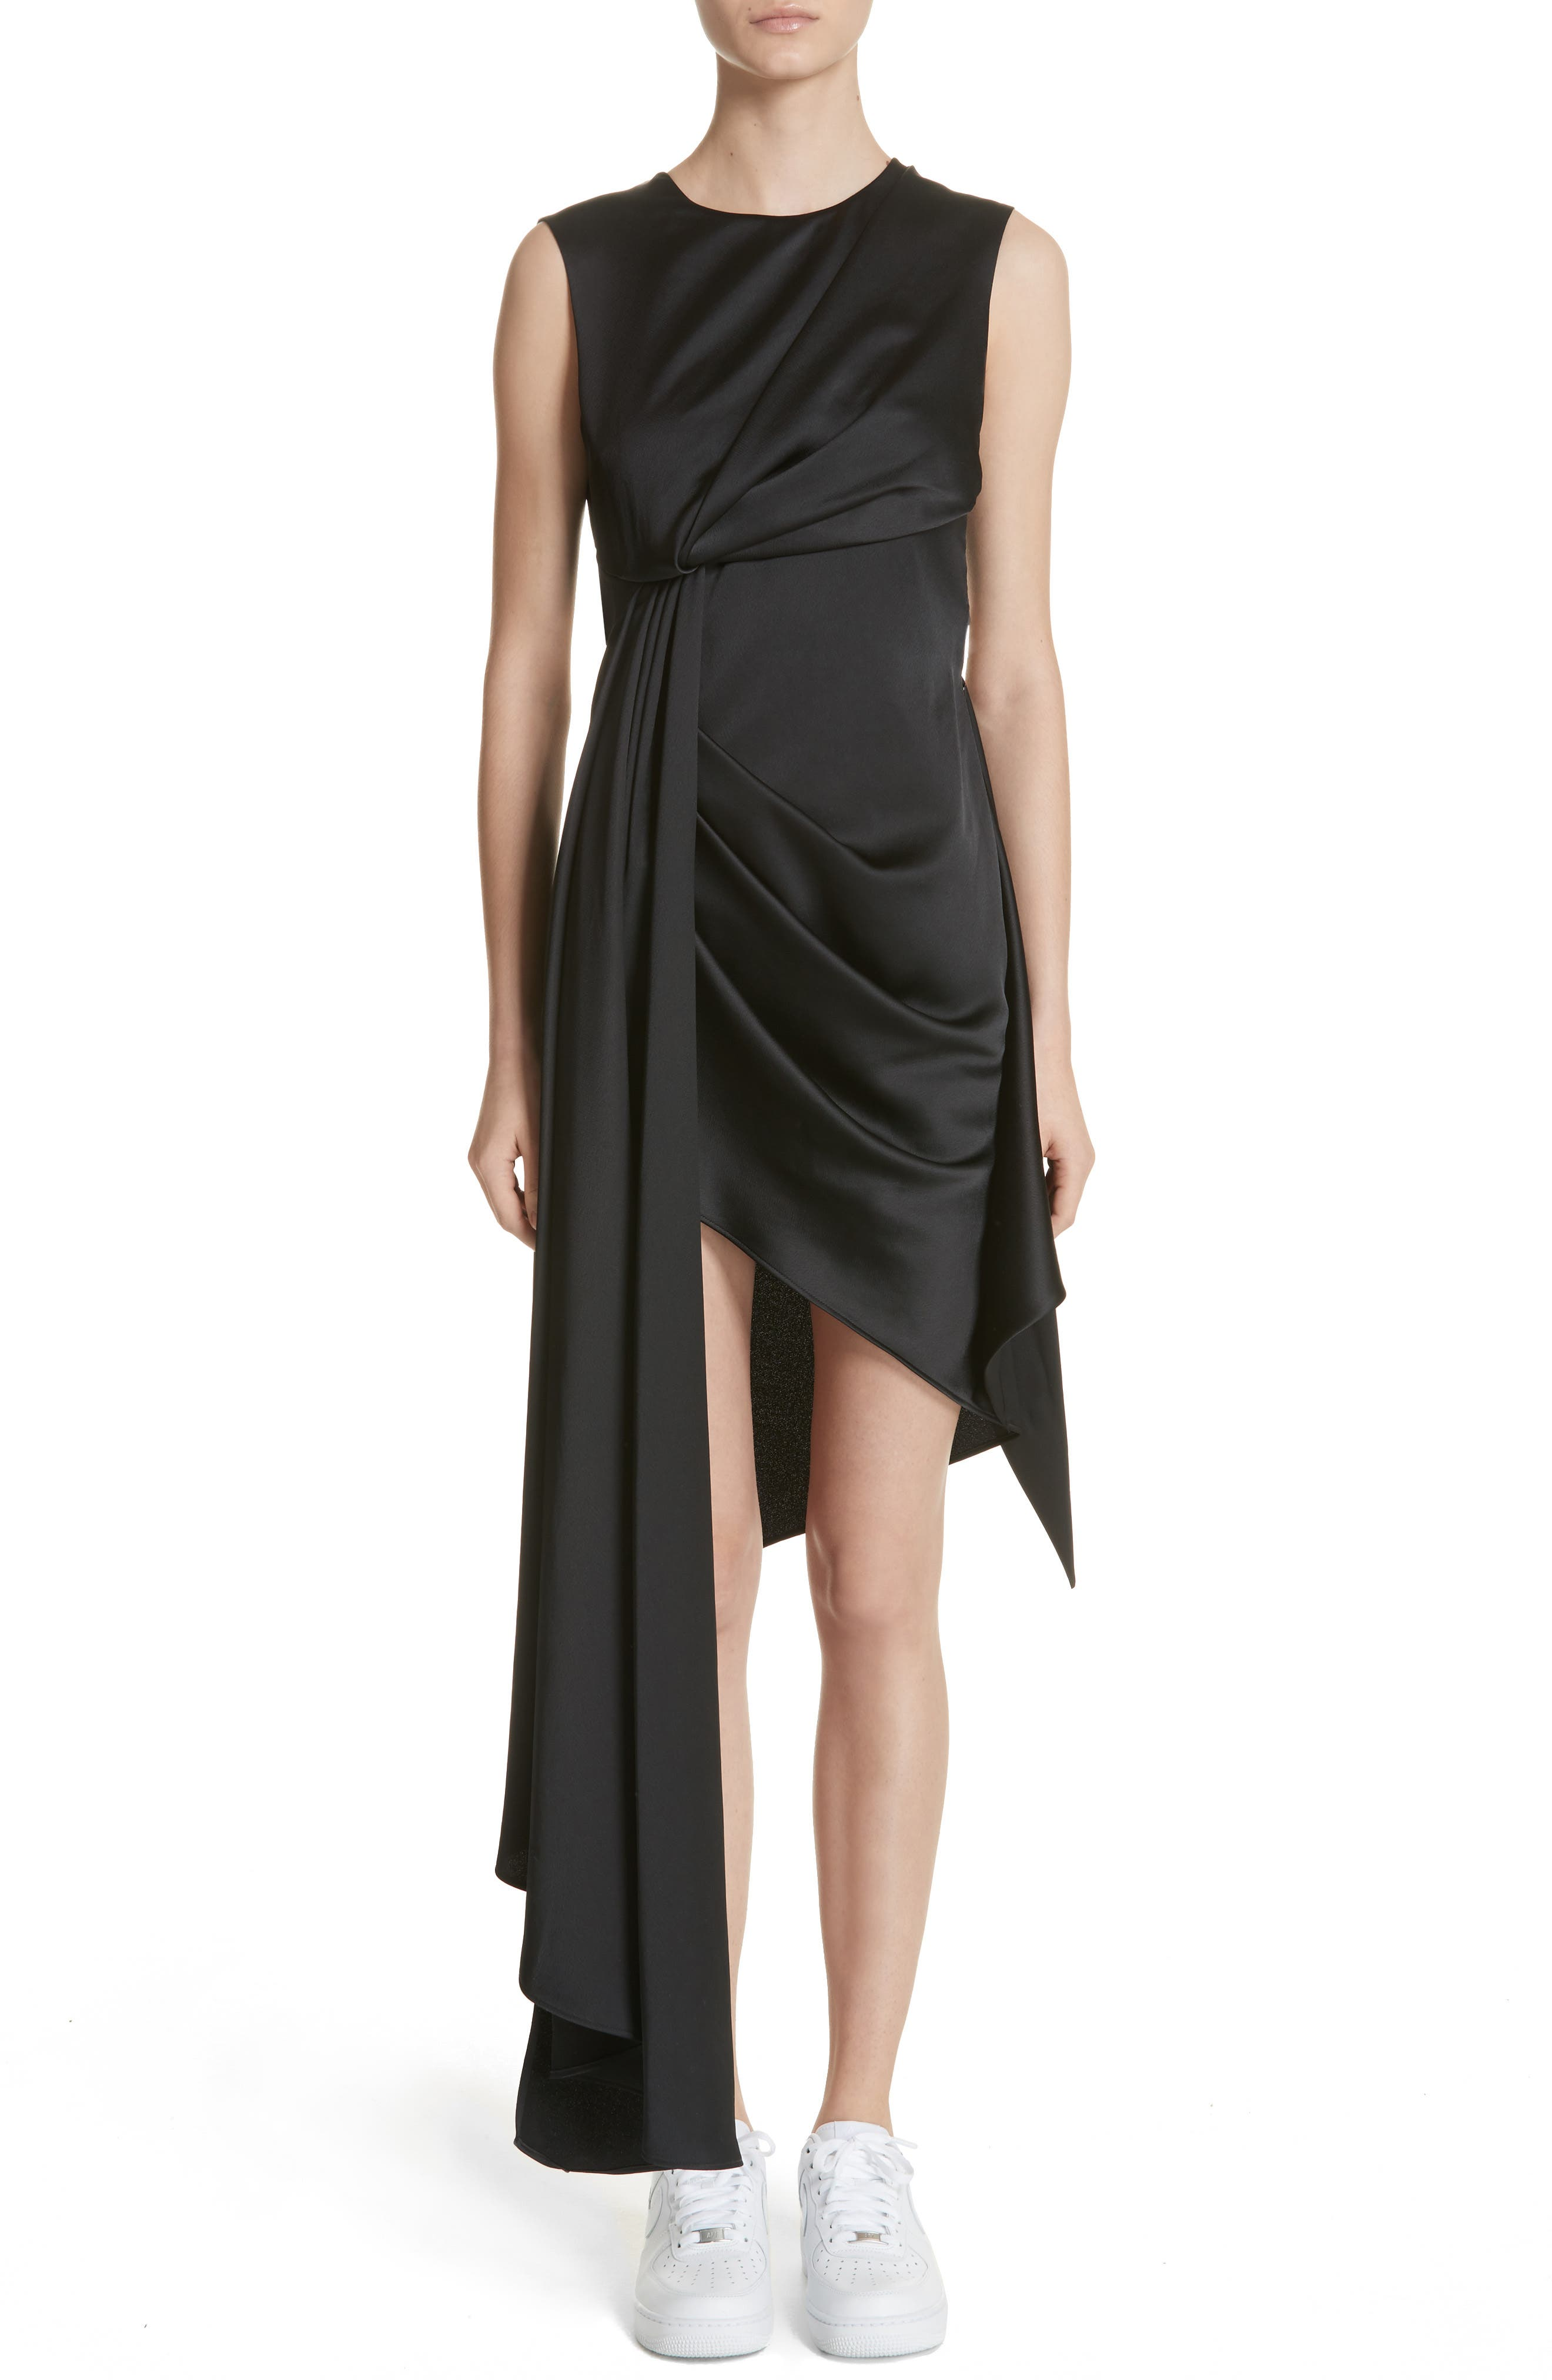 Alternate Image 1 Selected - Off-White Asymmetric Satin Dress